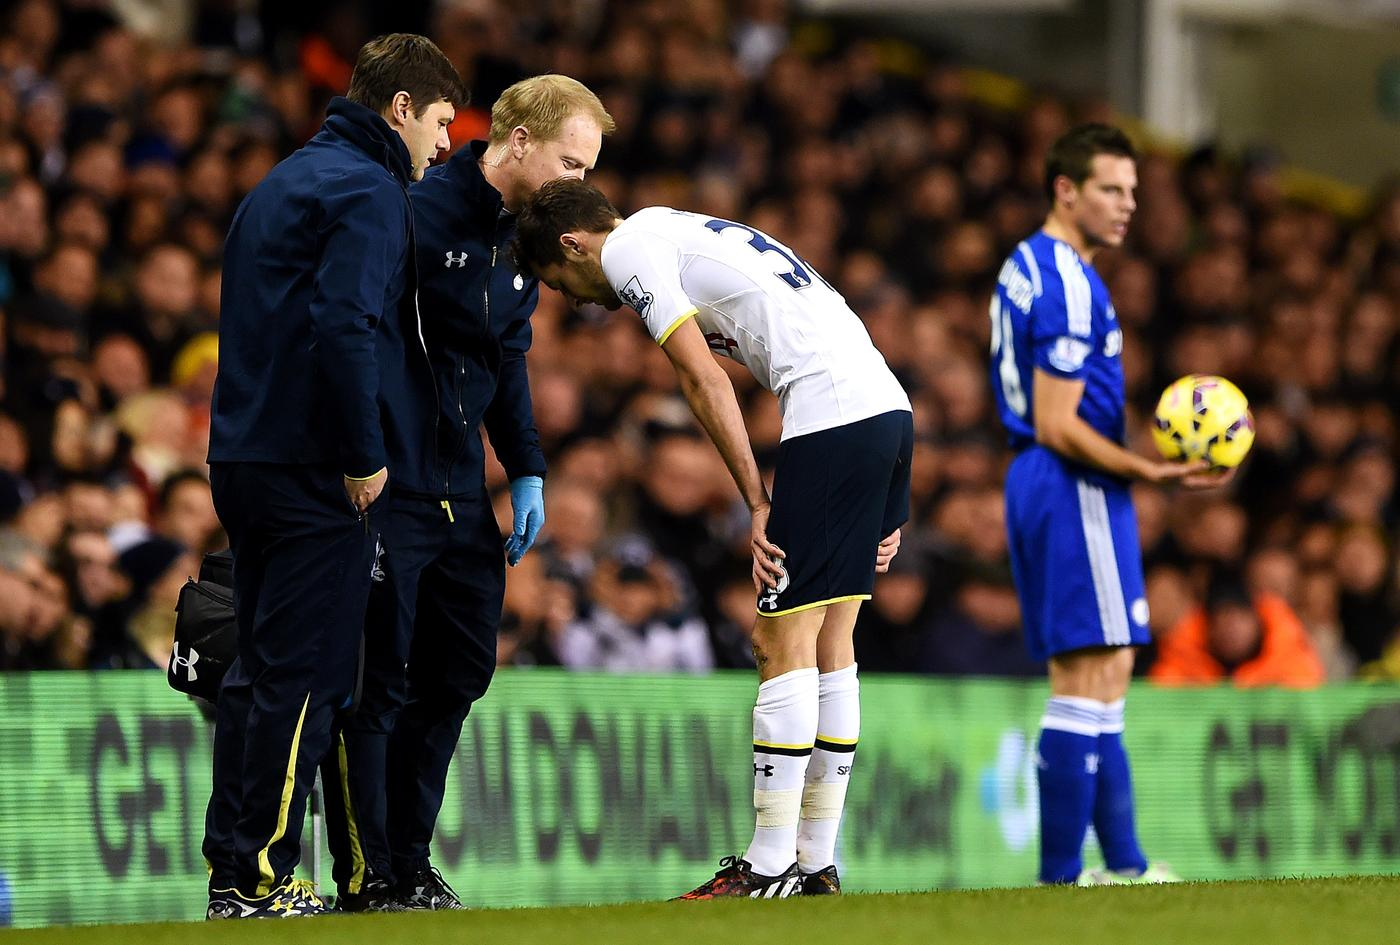 Can Tottenham Hotspur cope with busy fixture schedule ahead as they continue to fight on four fronts?